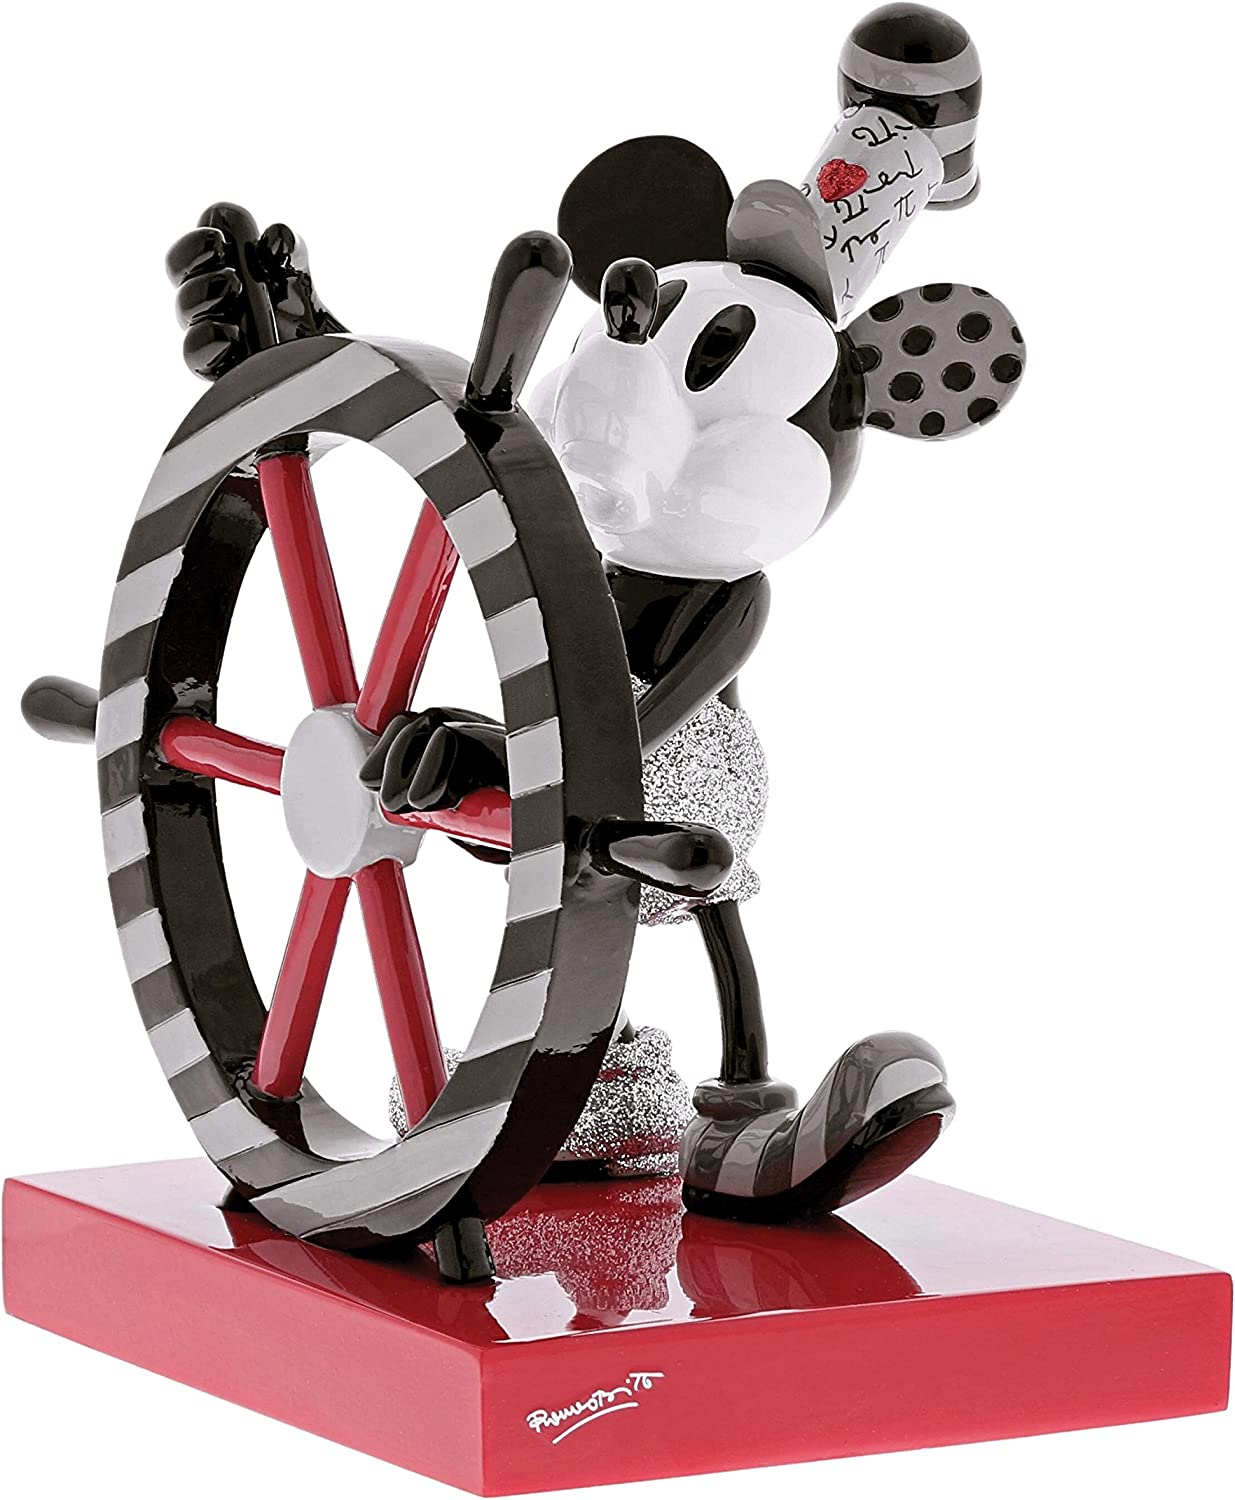 Enesco Disney by Britto Steamboat Willie, 7.25  Stone Resin Figurine